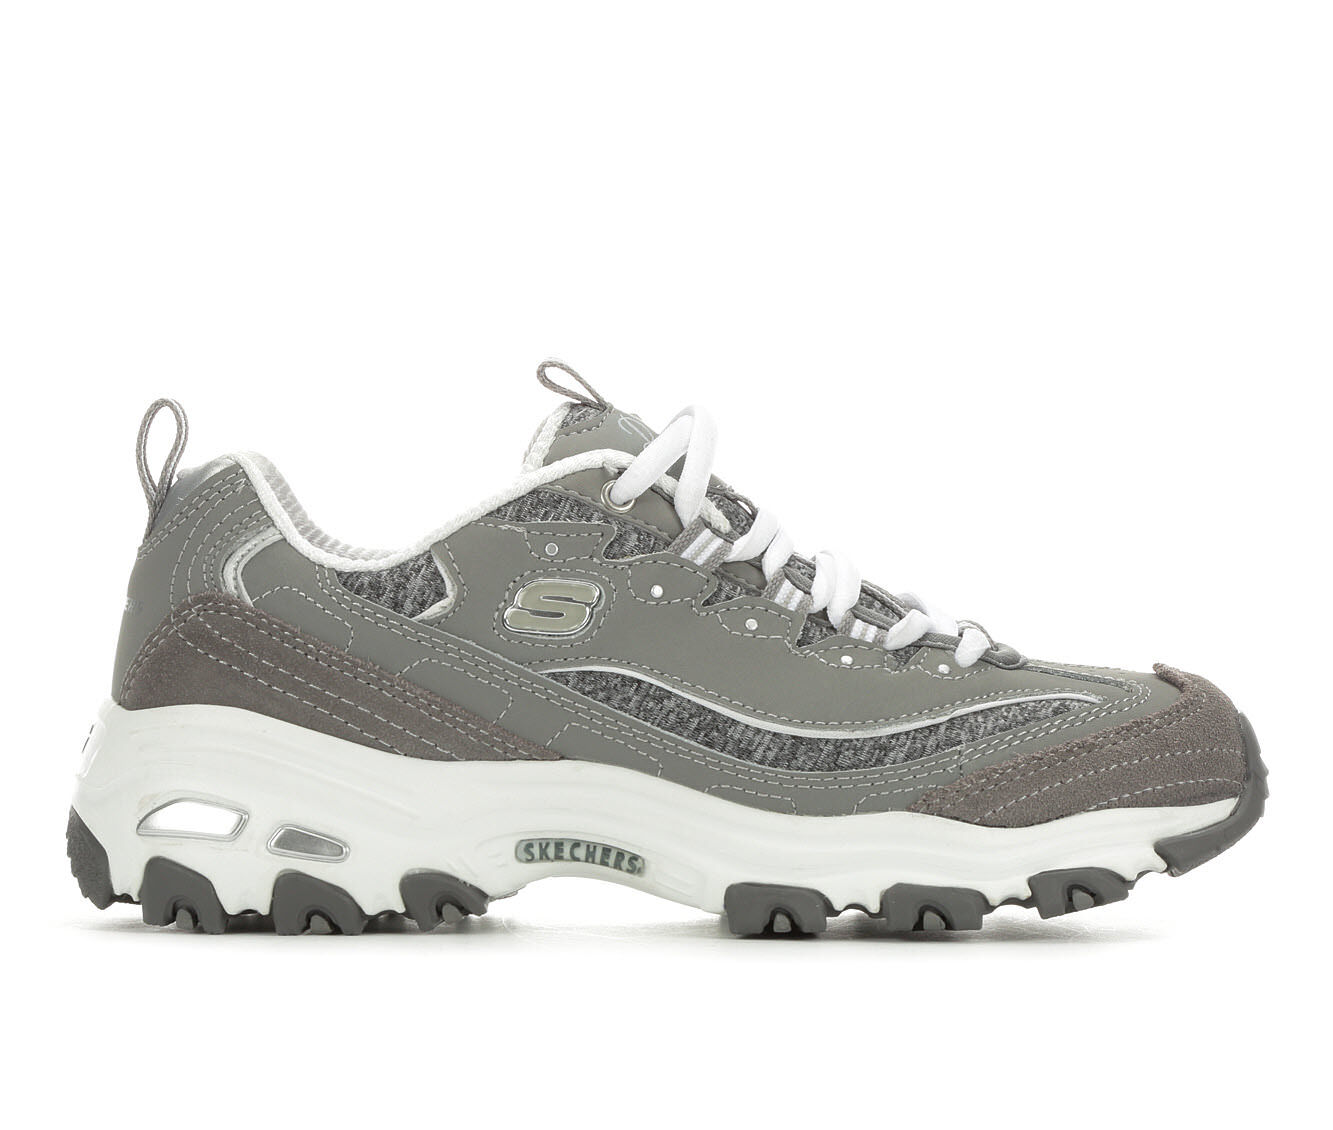 Women's Skechers Me Time 11936 Sneakers buy cheap with mastercard pay with paypal cheap sale low shipping fee cheap best store to get clearance collections 76J7kDeK